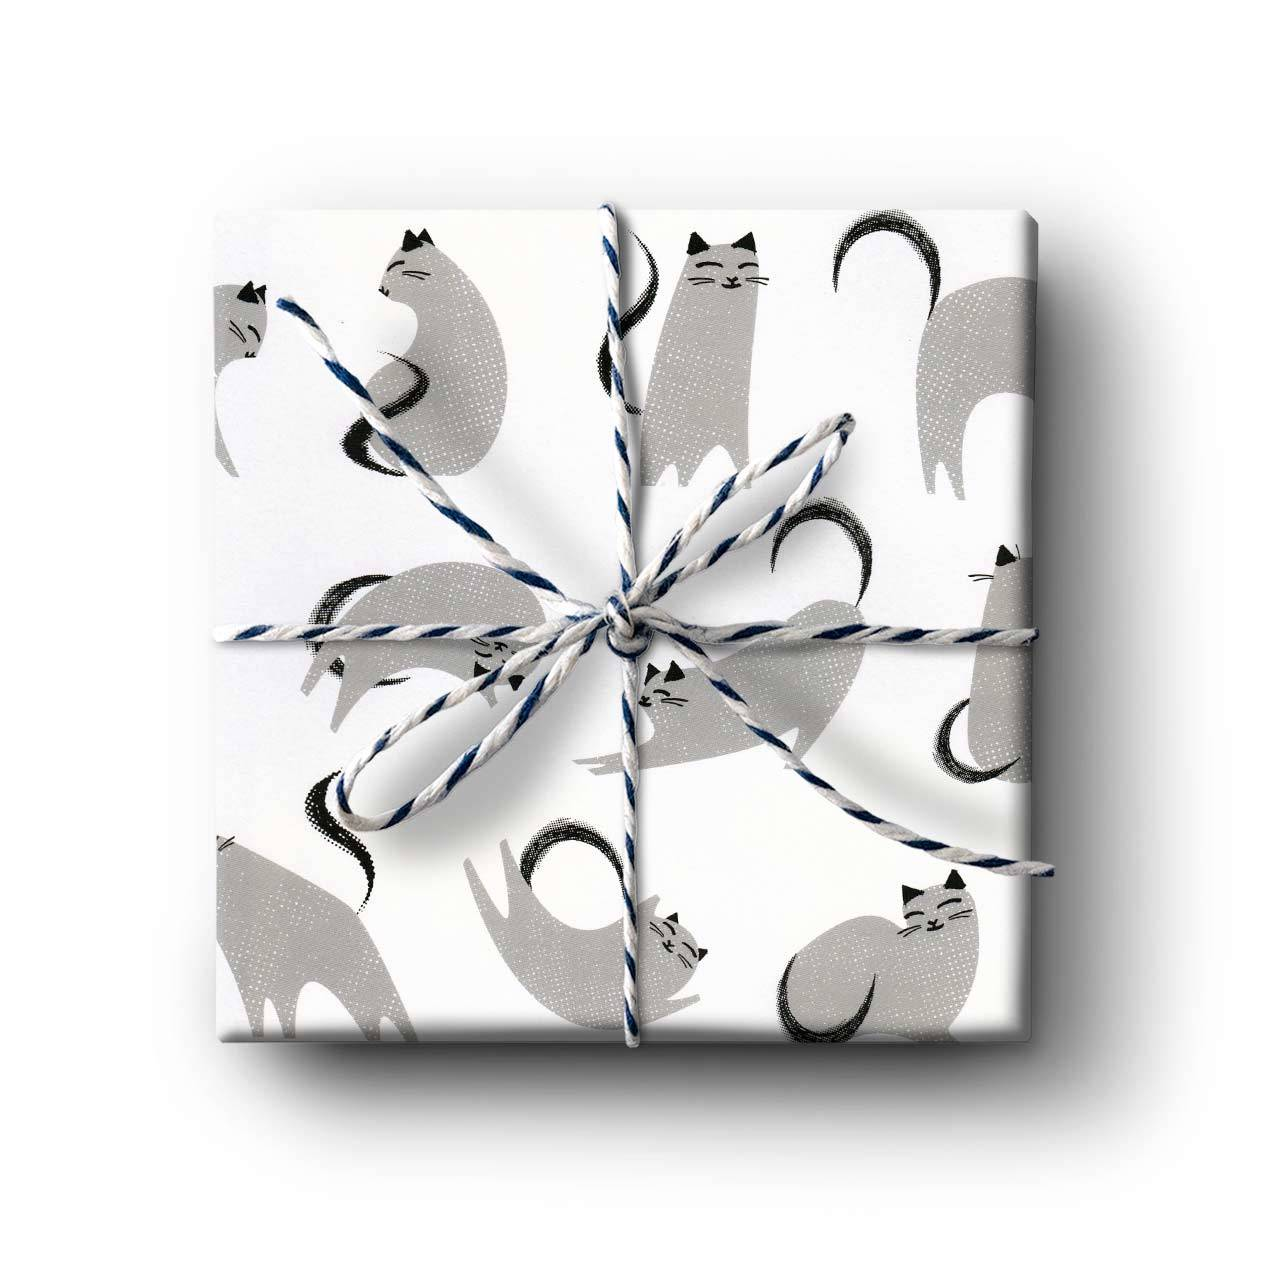 Grey Cat Gift Wrapping Paper - Folded Single Sheet